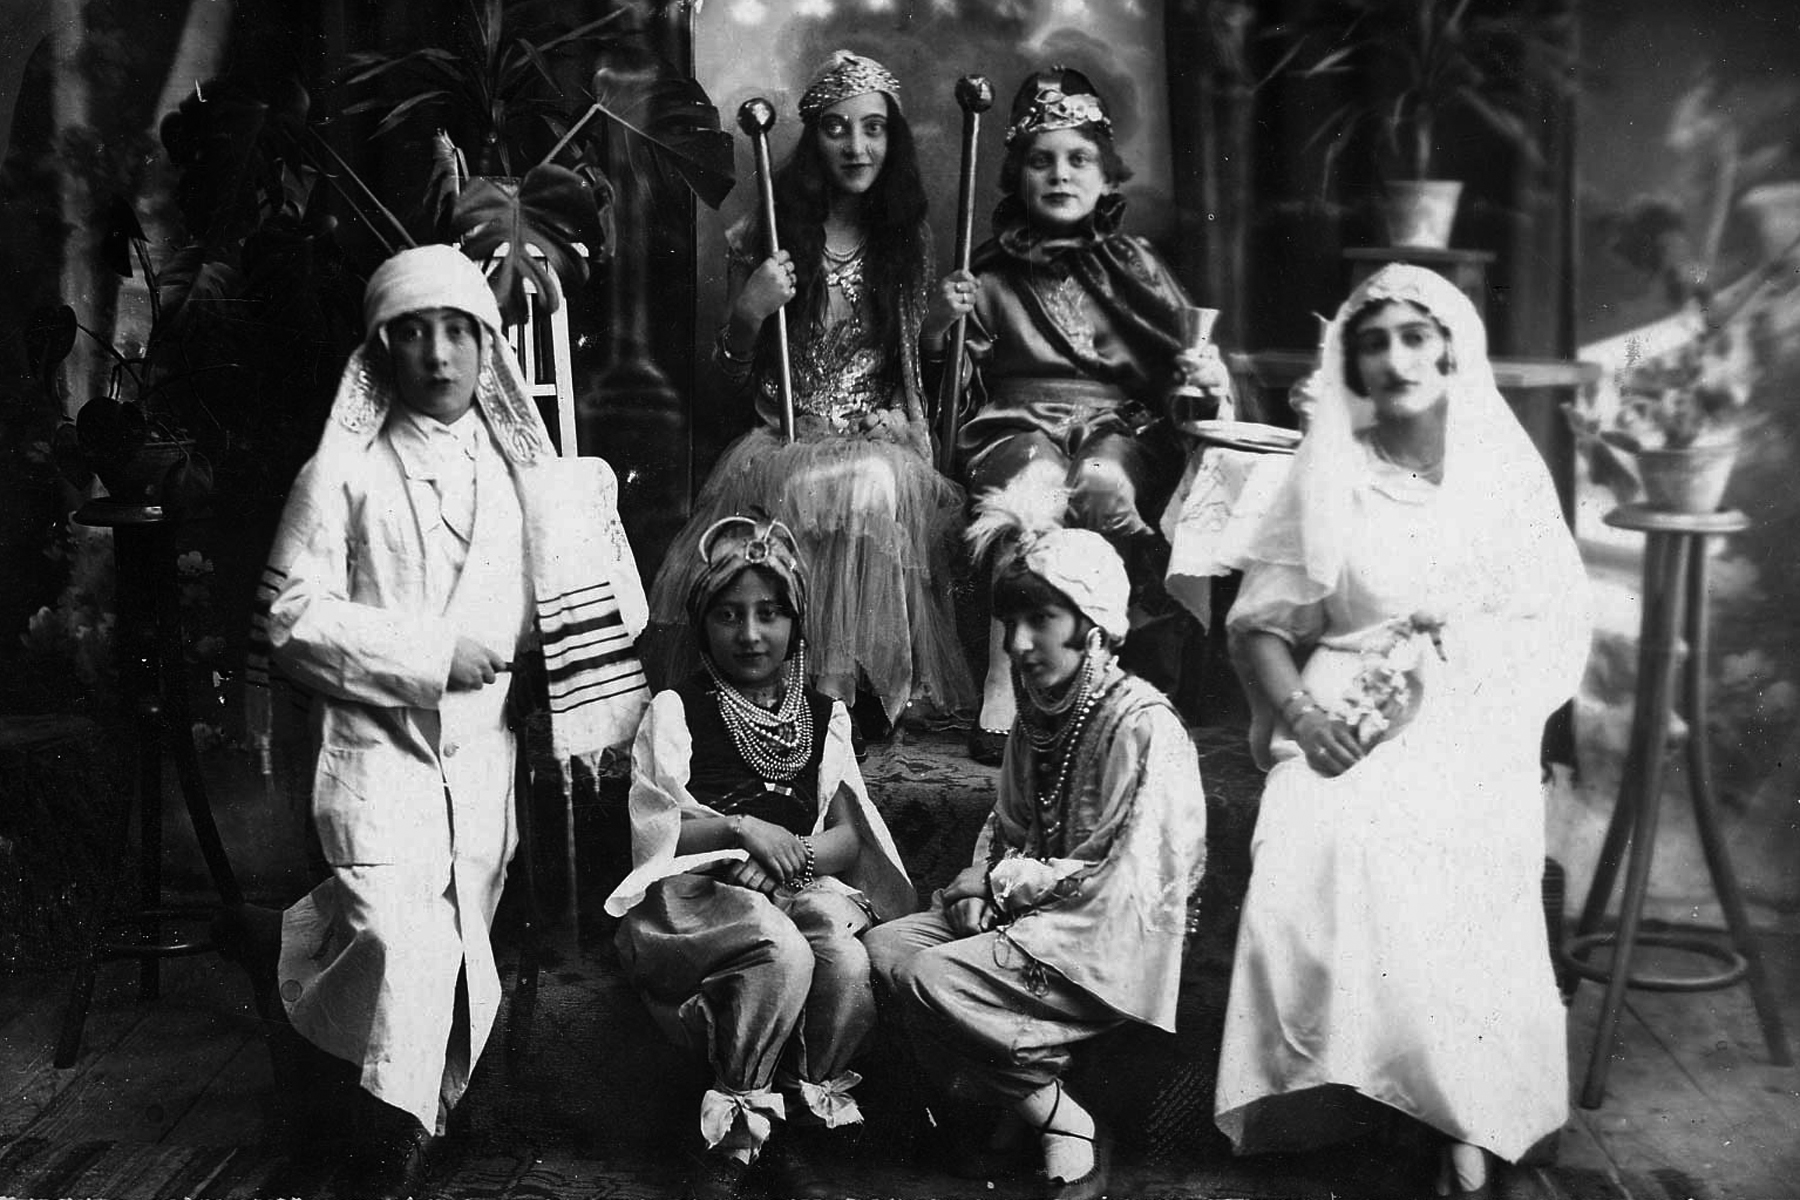 Actors in a play on the occasion of Purim at Chorostkow, Poland, 1934.